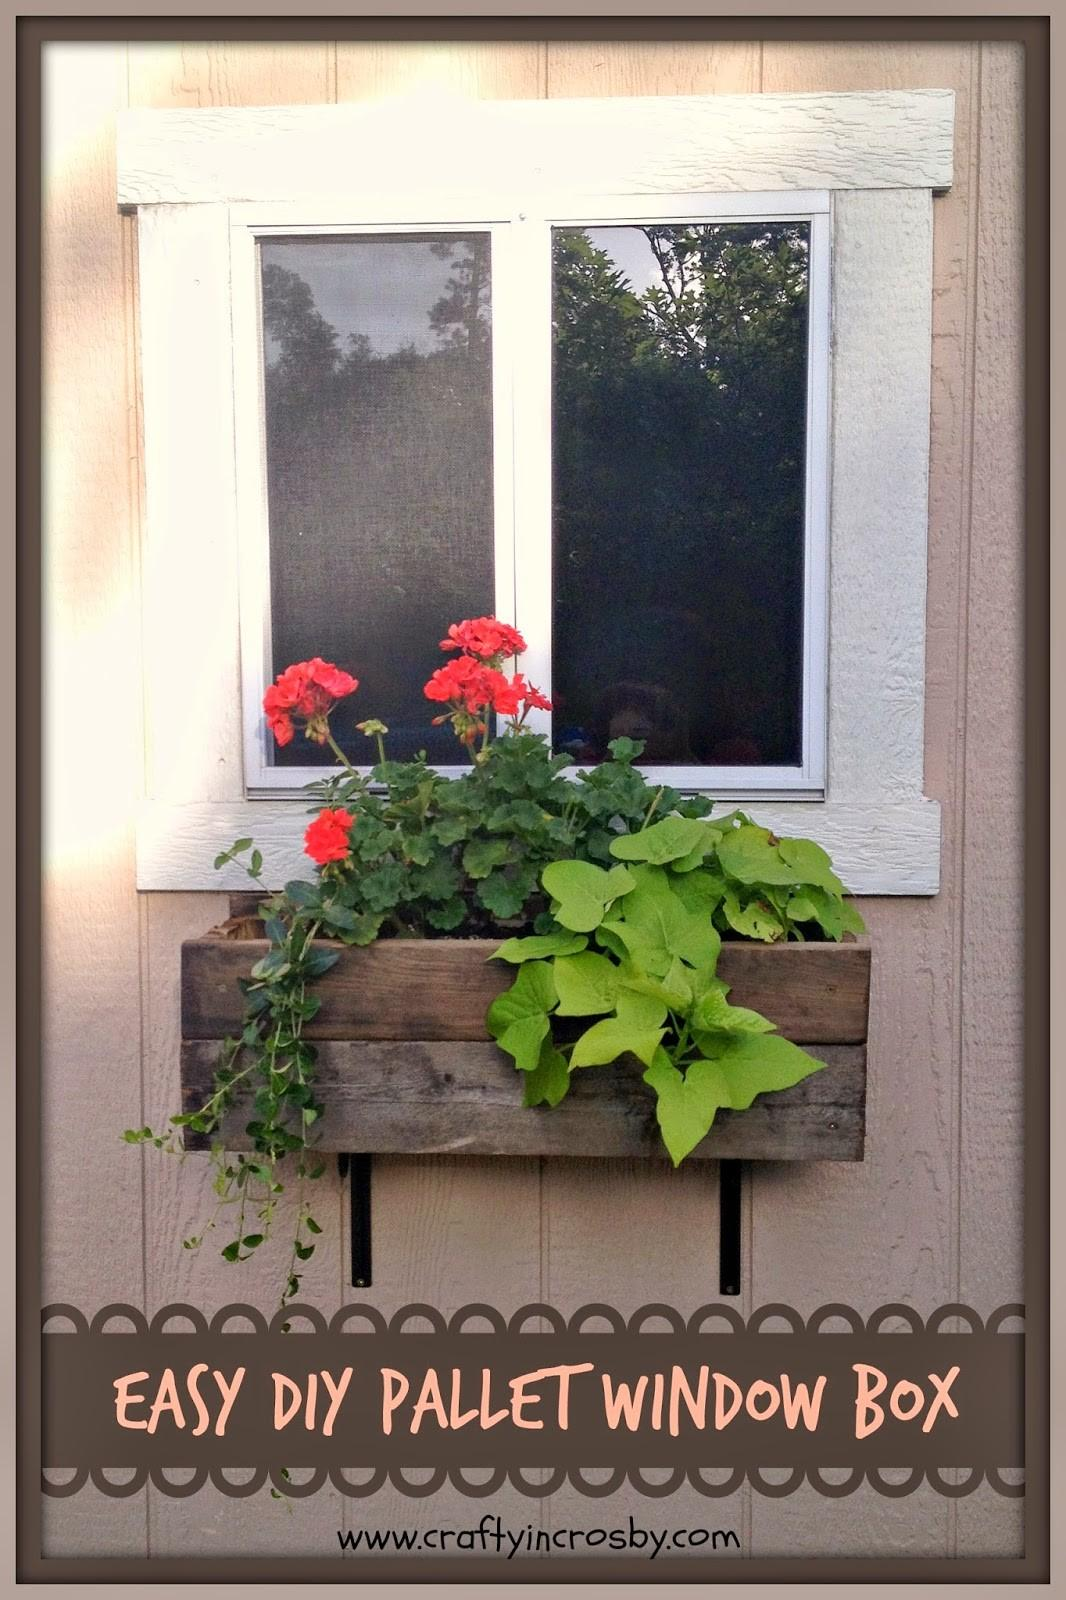 Crafty Crosby Easy Diy Pallet Window Box